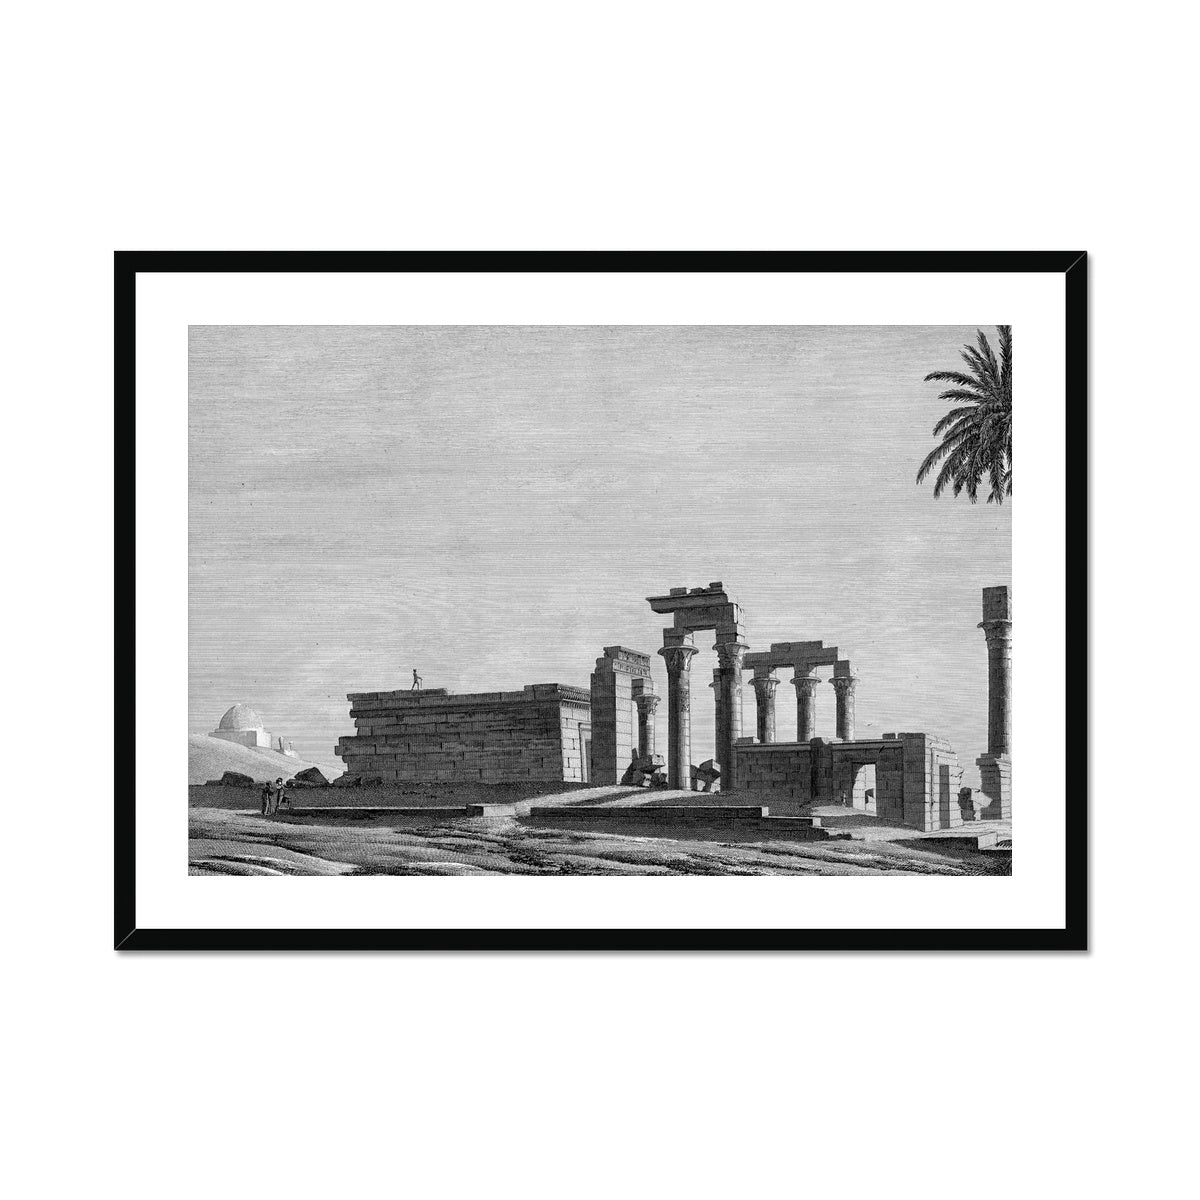 The Temple of Hermonthis Ruins 1 - Armant Egypt -  Framed & Mounted Print